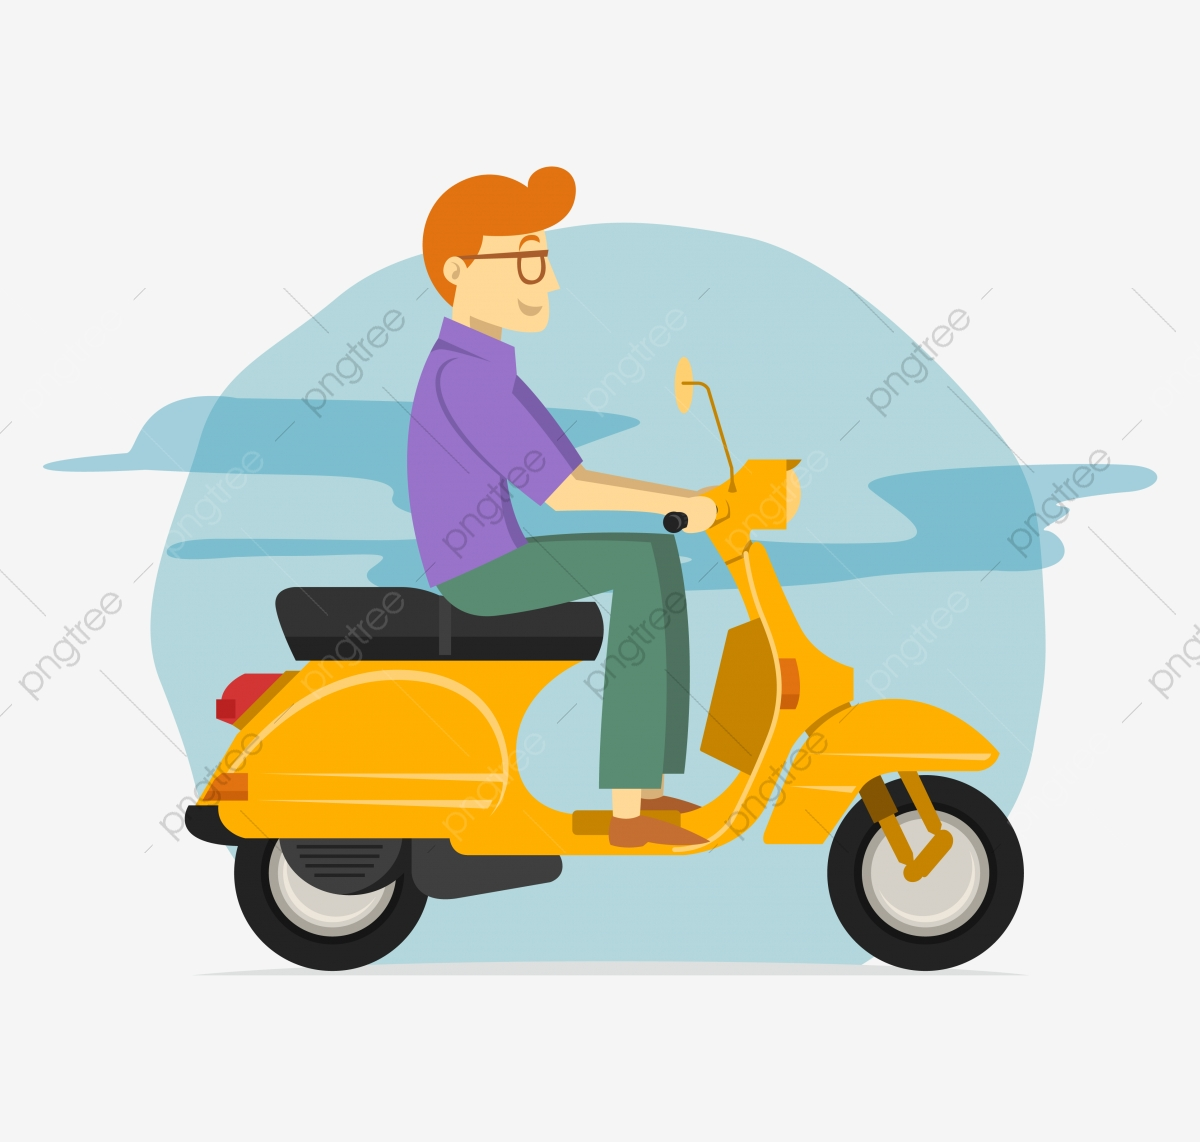 scooter png images vector and psd files free download on pngtree https pngtree com freepng scooter 3637446 html